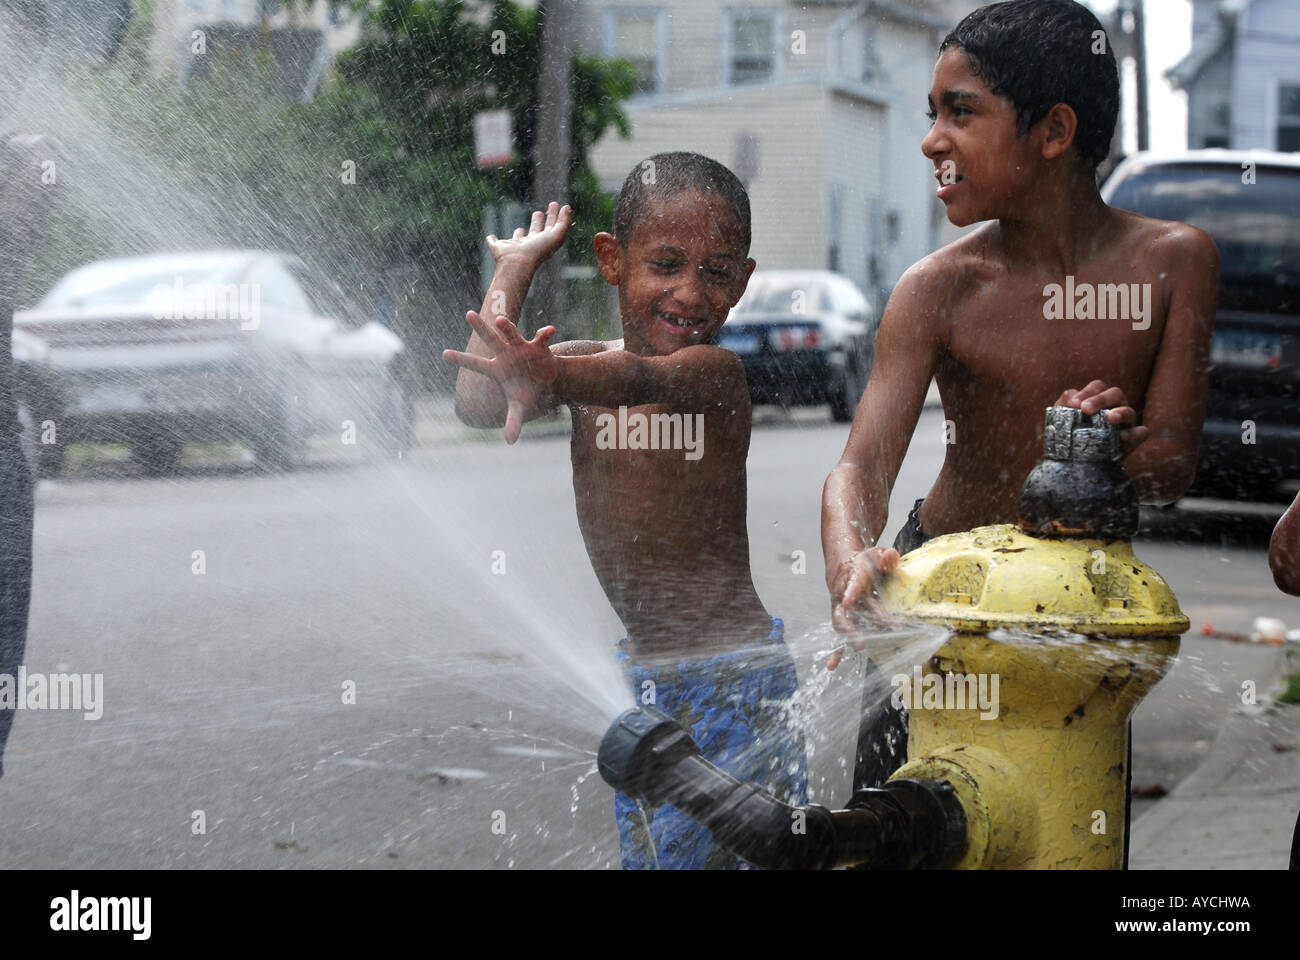 Children cooling off during summer heat wave in an urban city global warming concept - Stock Image